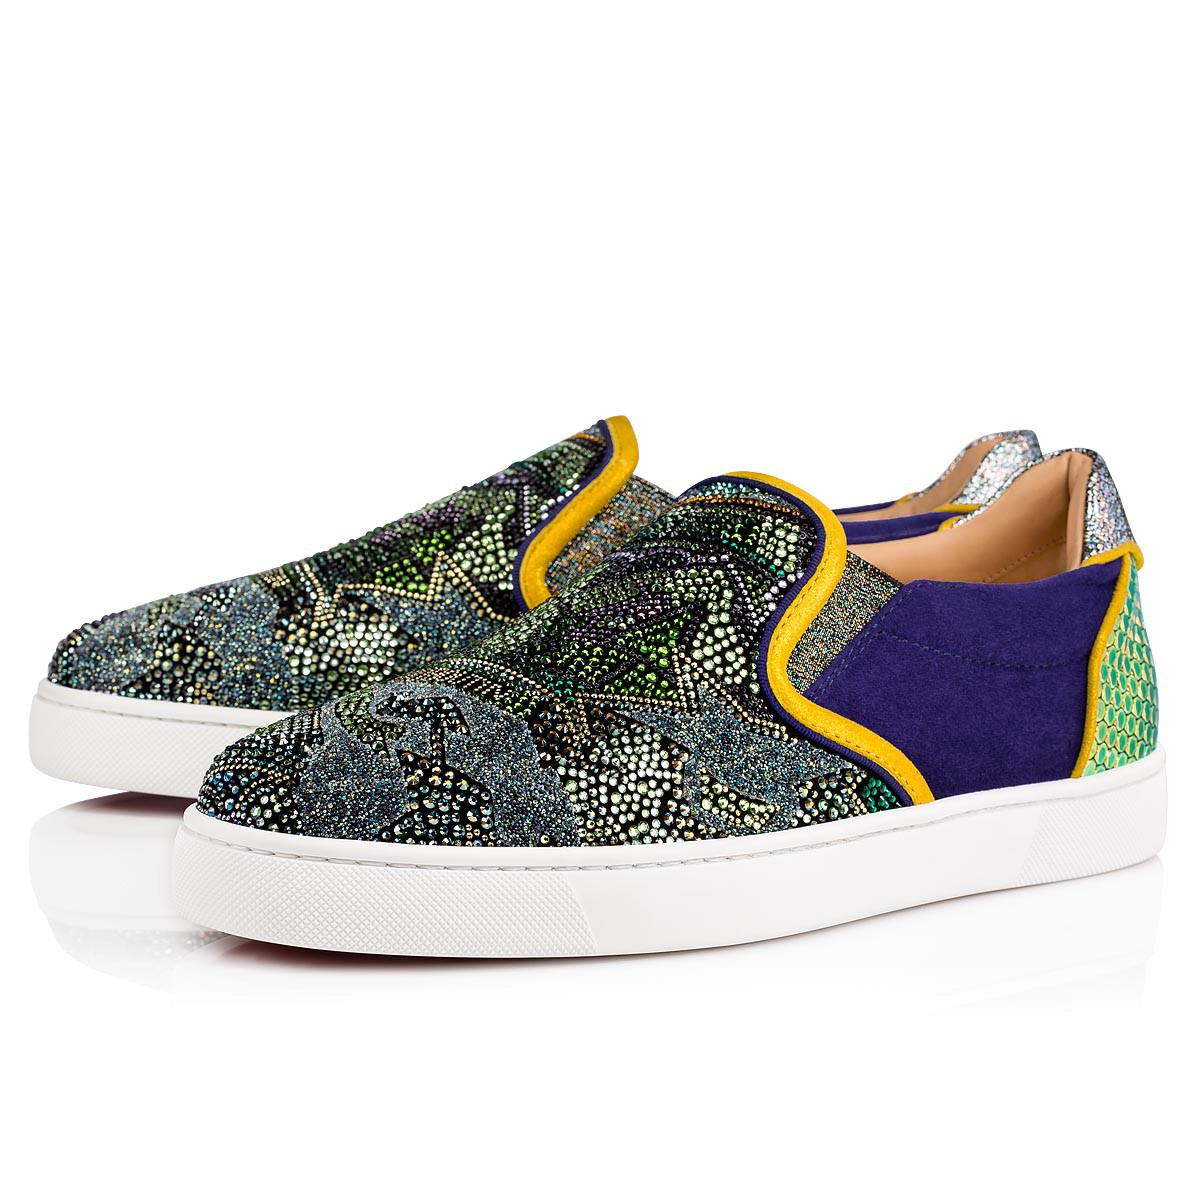 鞋履 - Sailor Strassgr 000 Strass - Christian Louboutin